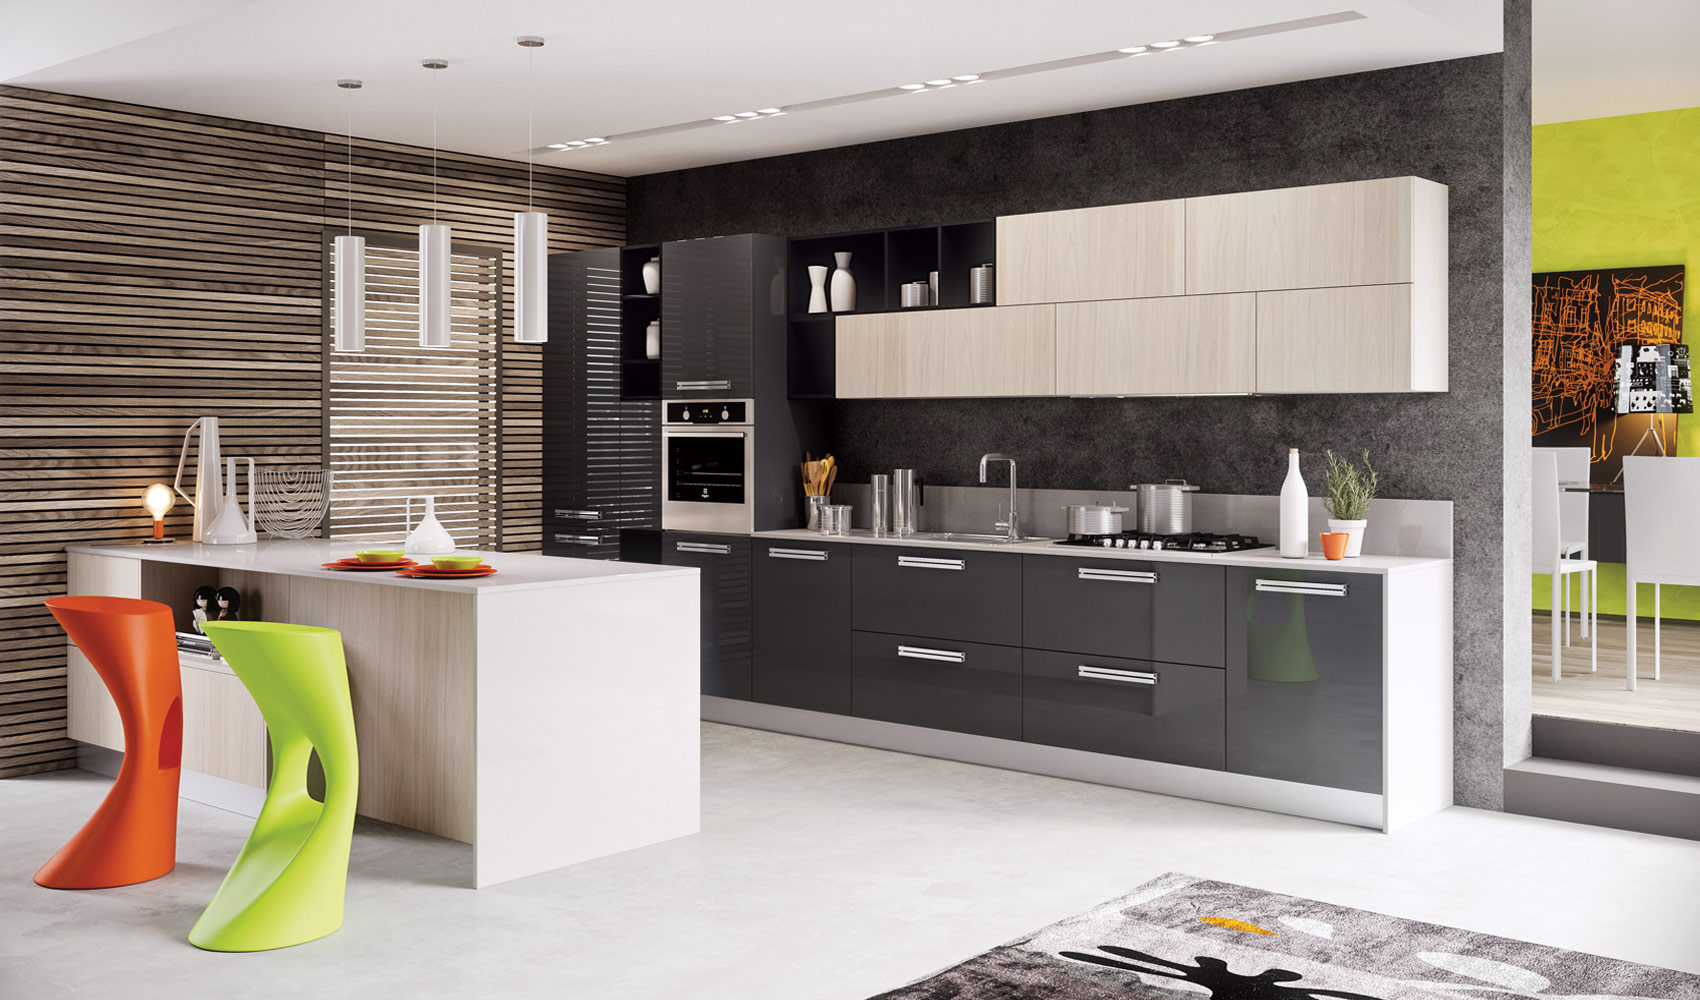 Contemporary kitchen design interior design ideas Kitchen interior design